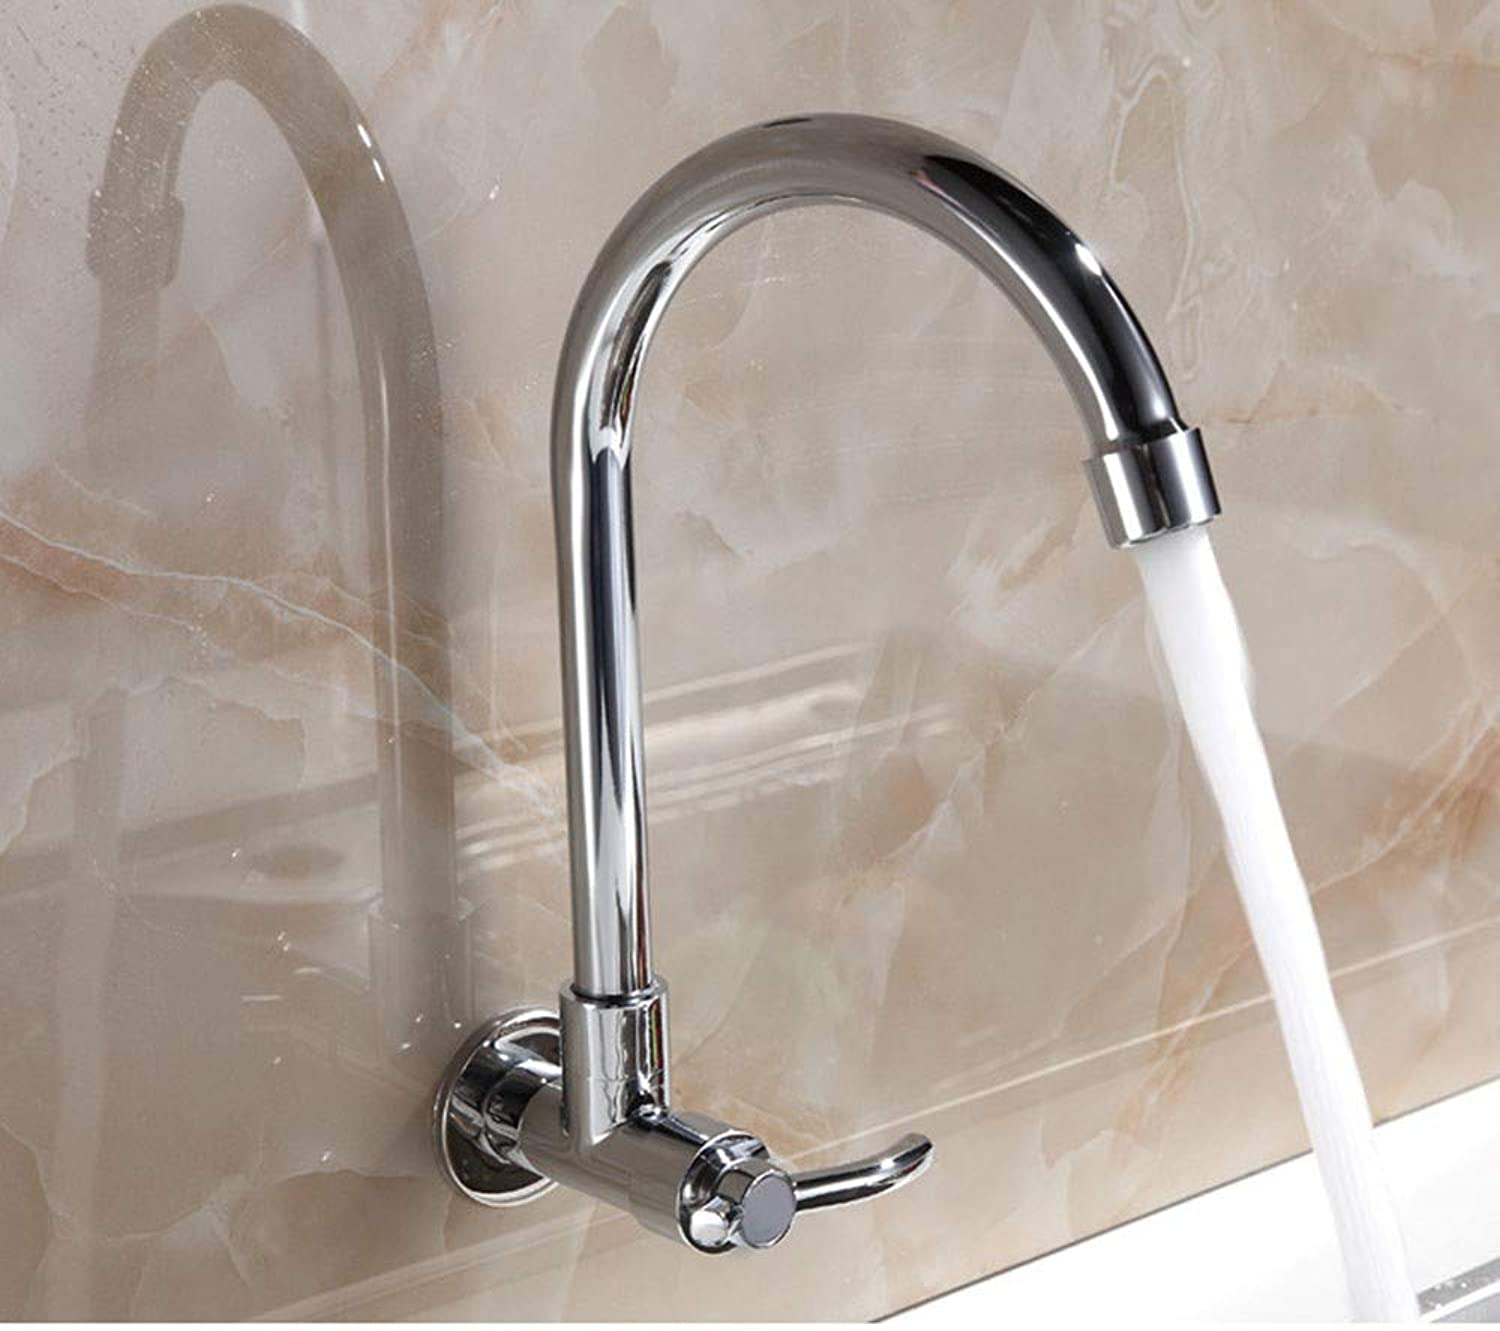 Single Cold into The Wall Sink Faucet Sink Faucet?Quick Open Faucet Faucet Kitchen Sink Faucet Bathroom Sink Faucet